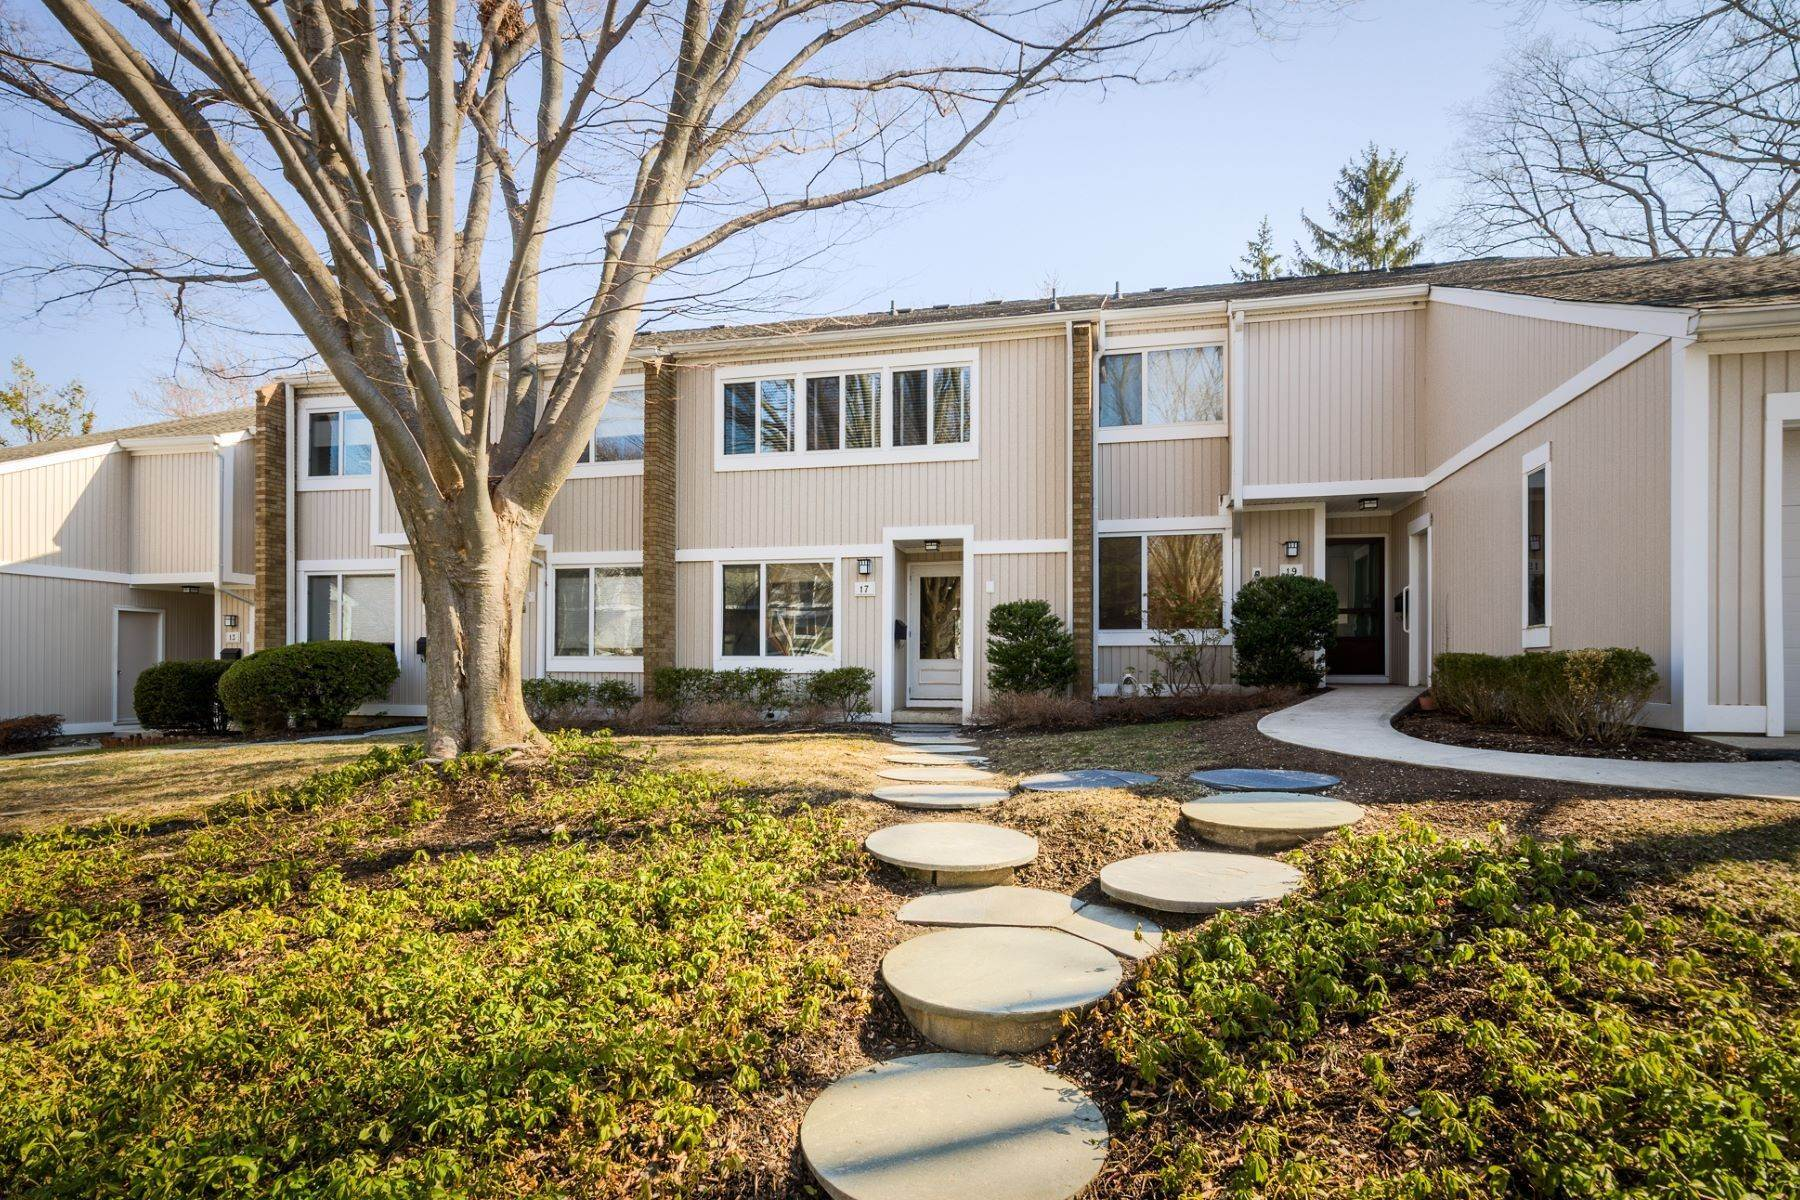 townhouses at Stunning 2 Bedroom Queenston Commons for Rent! 17 Gordon Way, Princeton, New Jersey 08540 United States